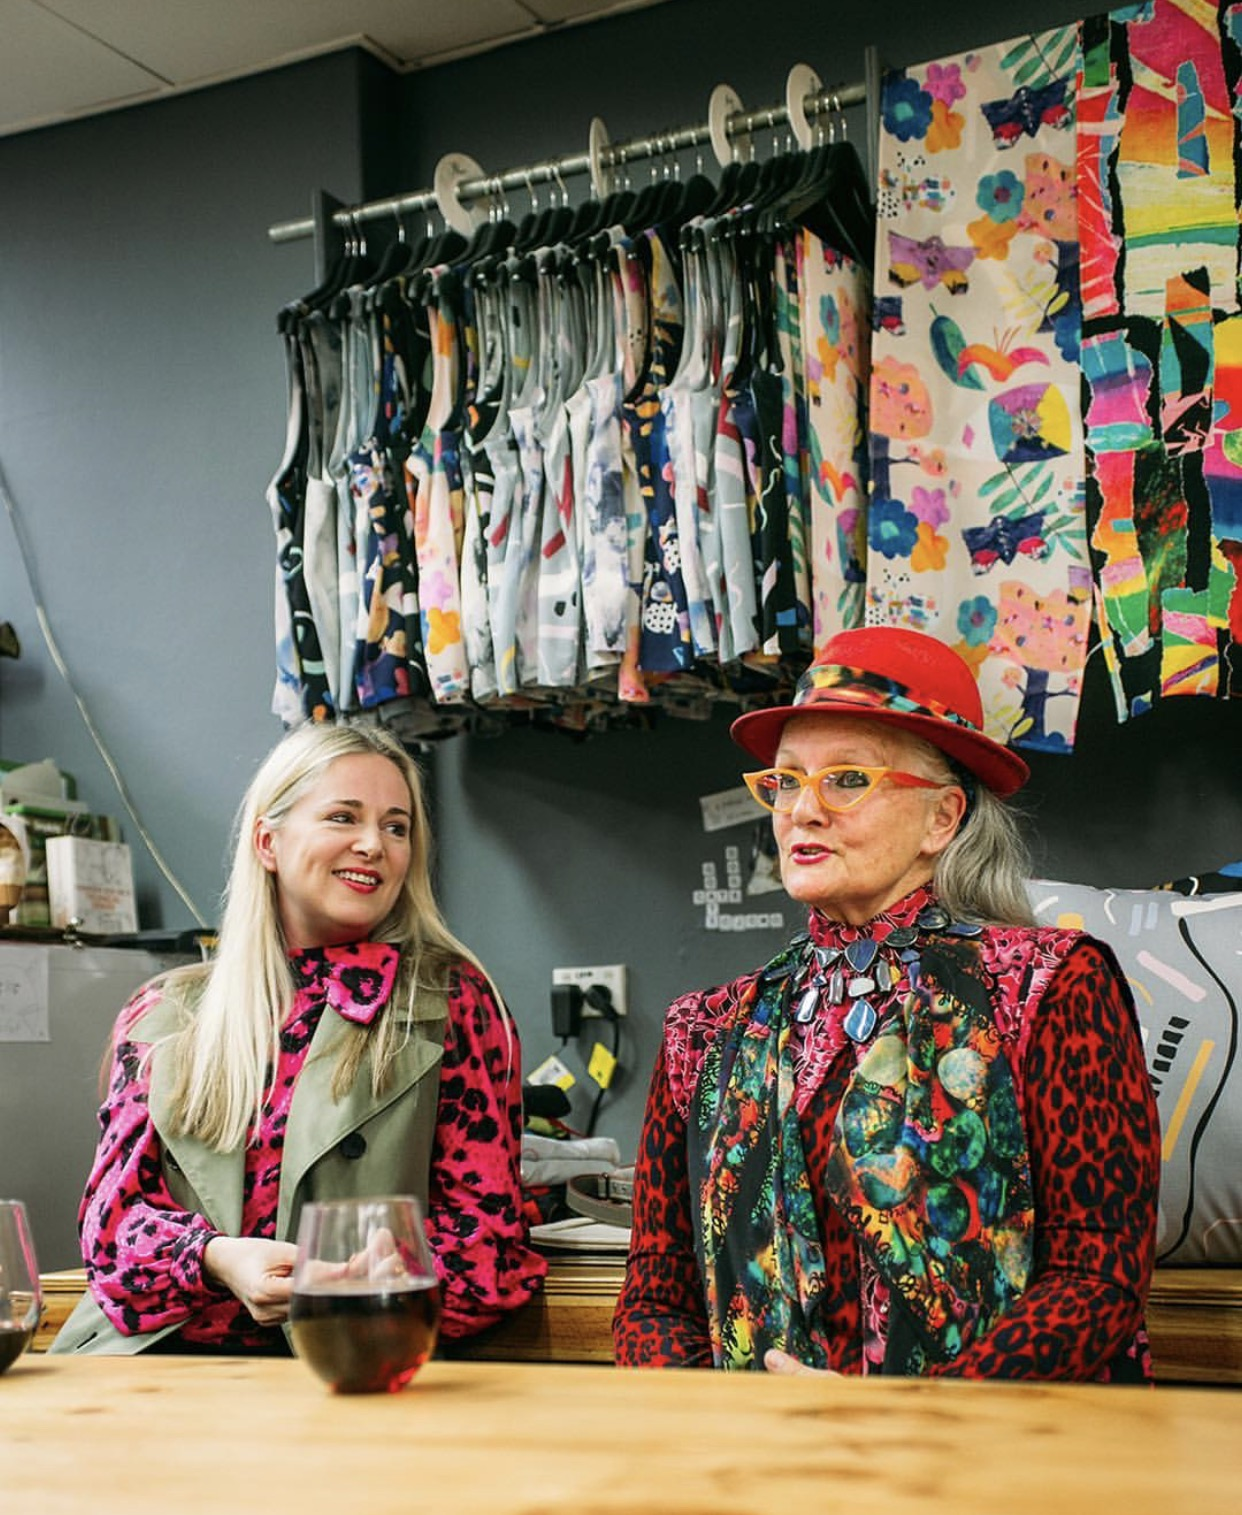 Clare discusses the project with Linda Jackson at The Social Outfit in 2017